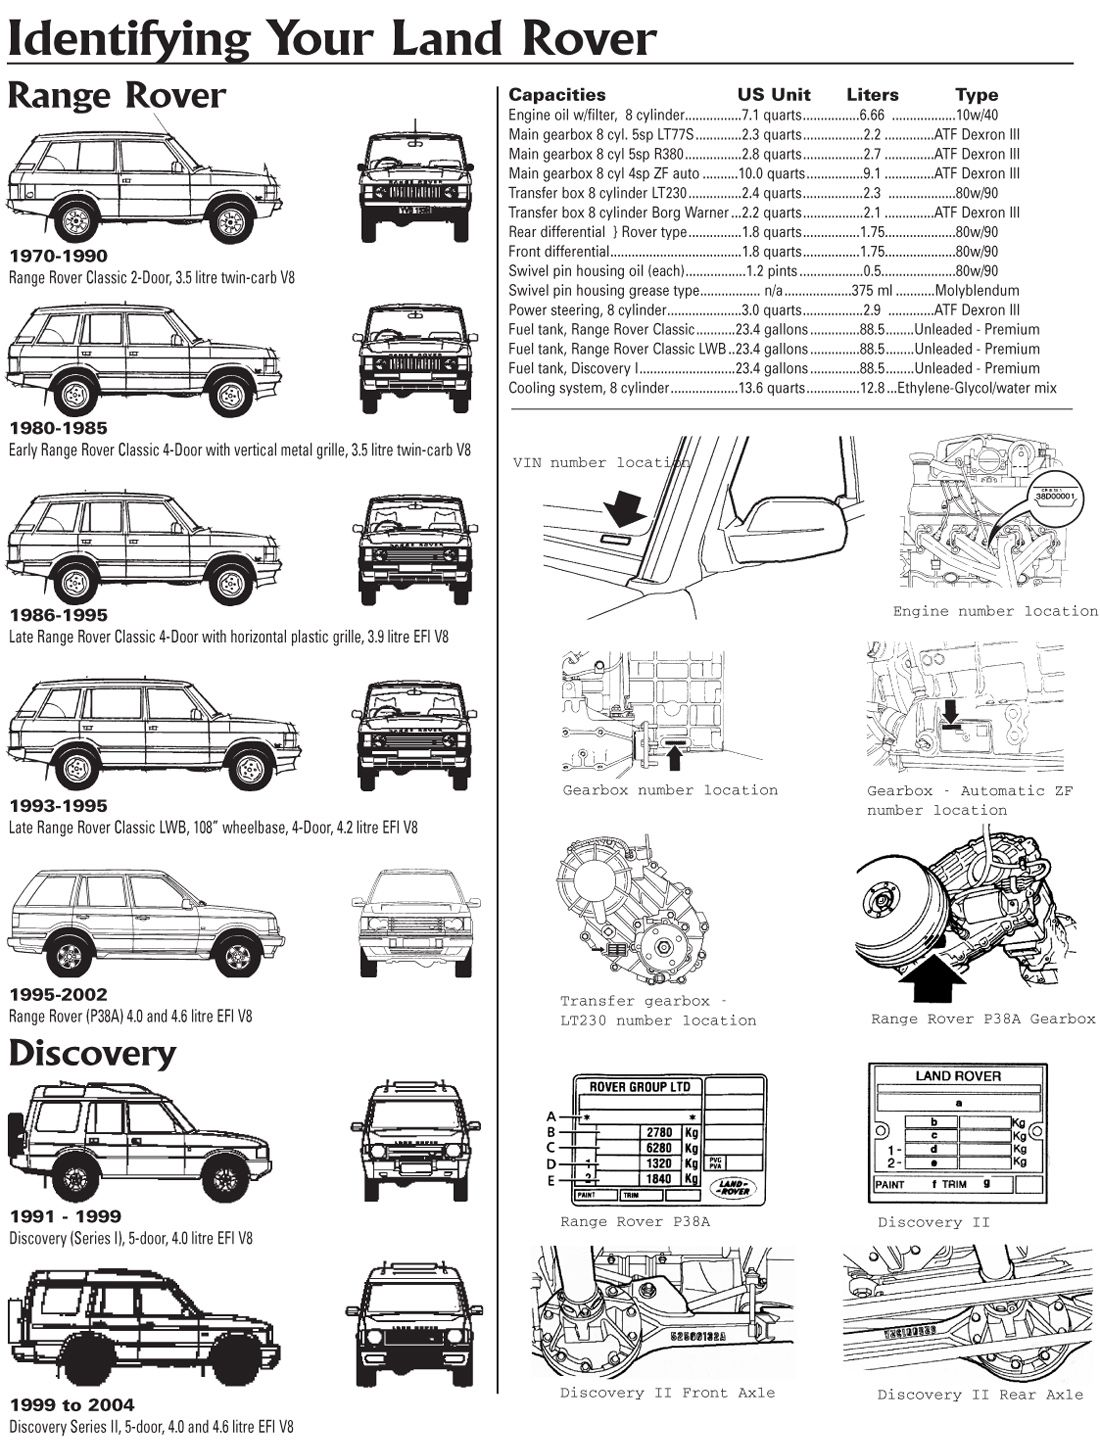 Land Rover Discovery Parts Diagram Pictures To Pin On